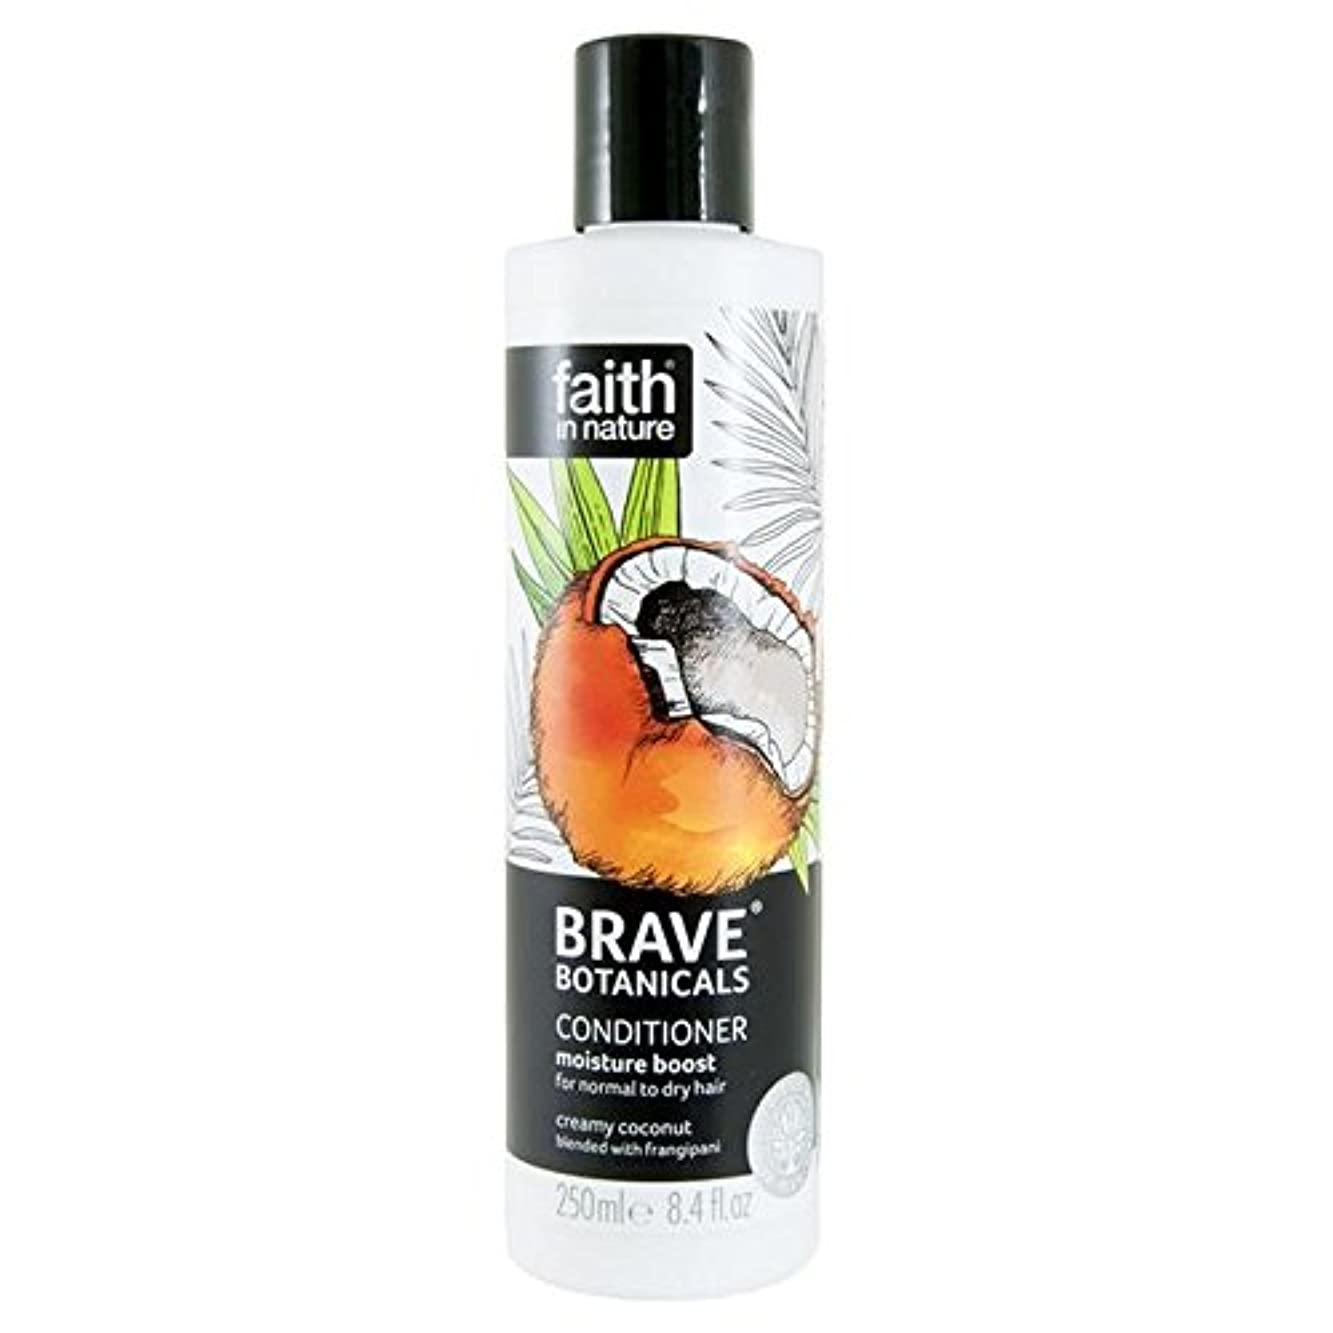 待つ動揺させる累計Brave Botanicals Coconut & Frangipani Moisture Boost Conditioner 250ml (Pack of 4) - (Faith In Nature) 勇敢な植物ココナッツ...